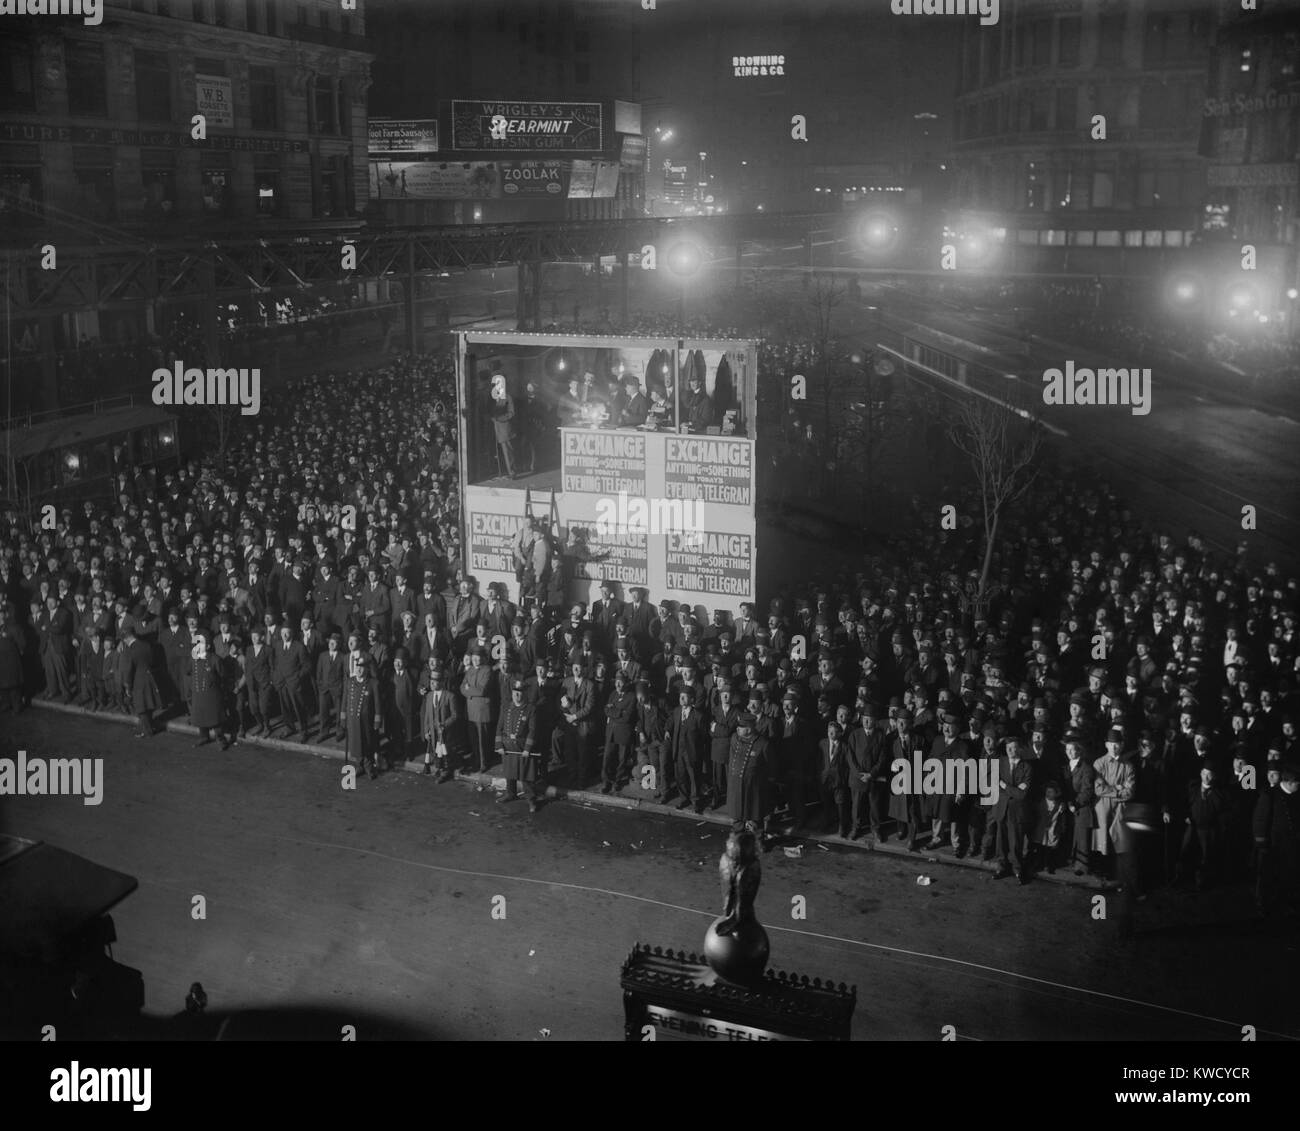 Election returns are projected from a booth by the New York Evening Telegram newspaper. A crowd has gathered to Stock Photo